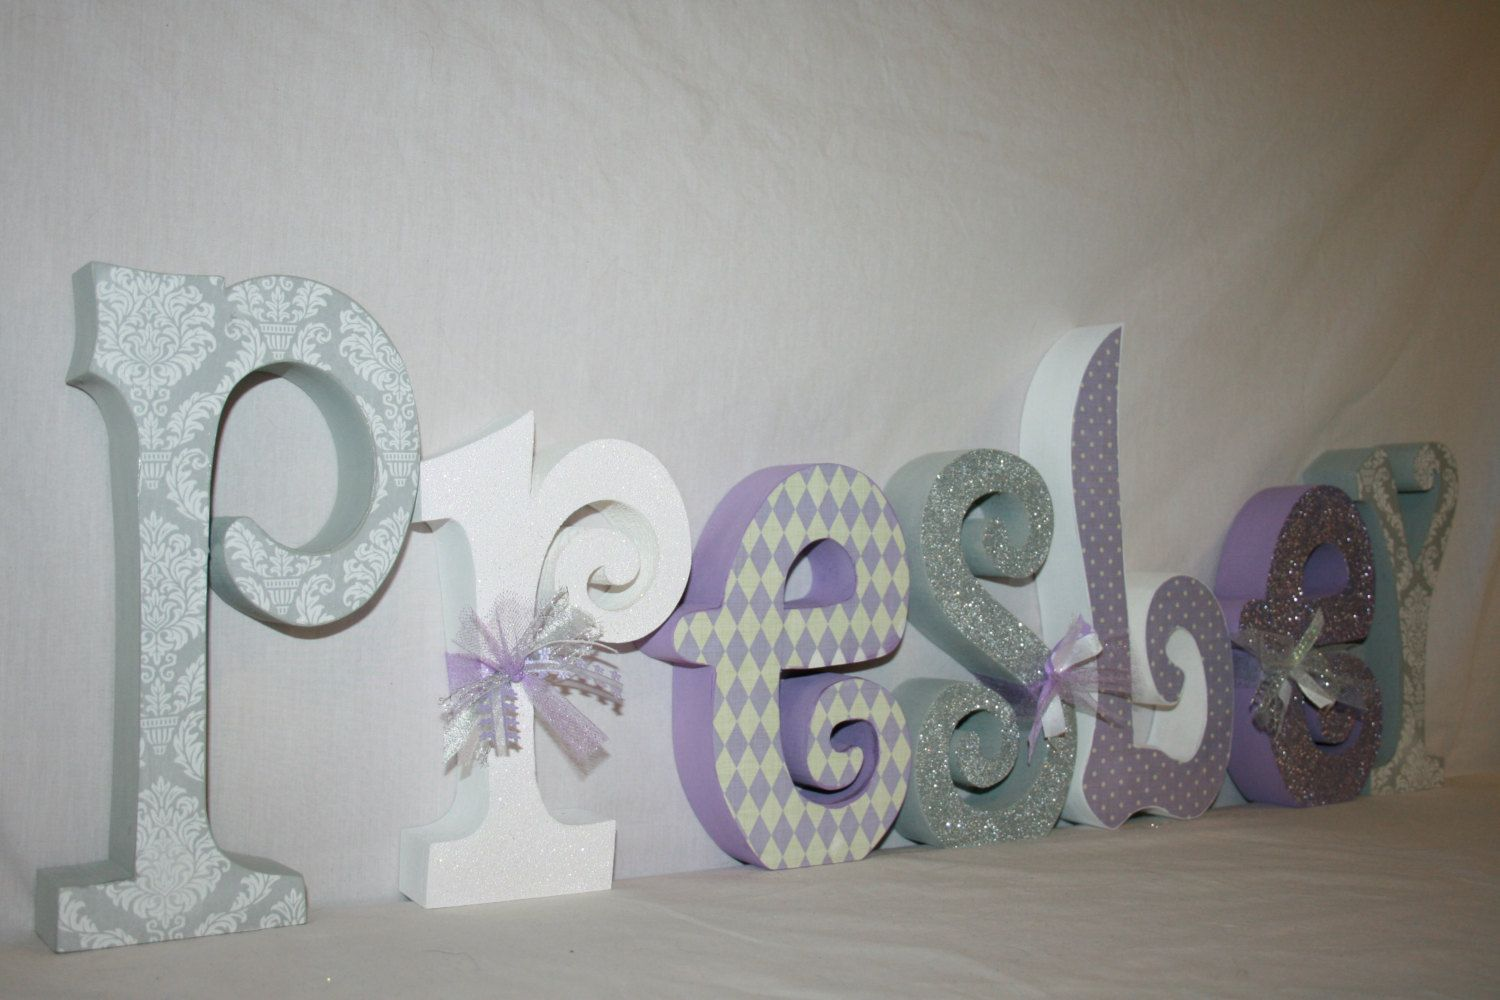 Baby Wooden Letters Lavender And Gray Damask Room Decor Name Nursery